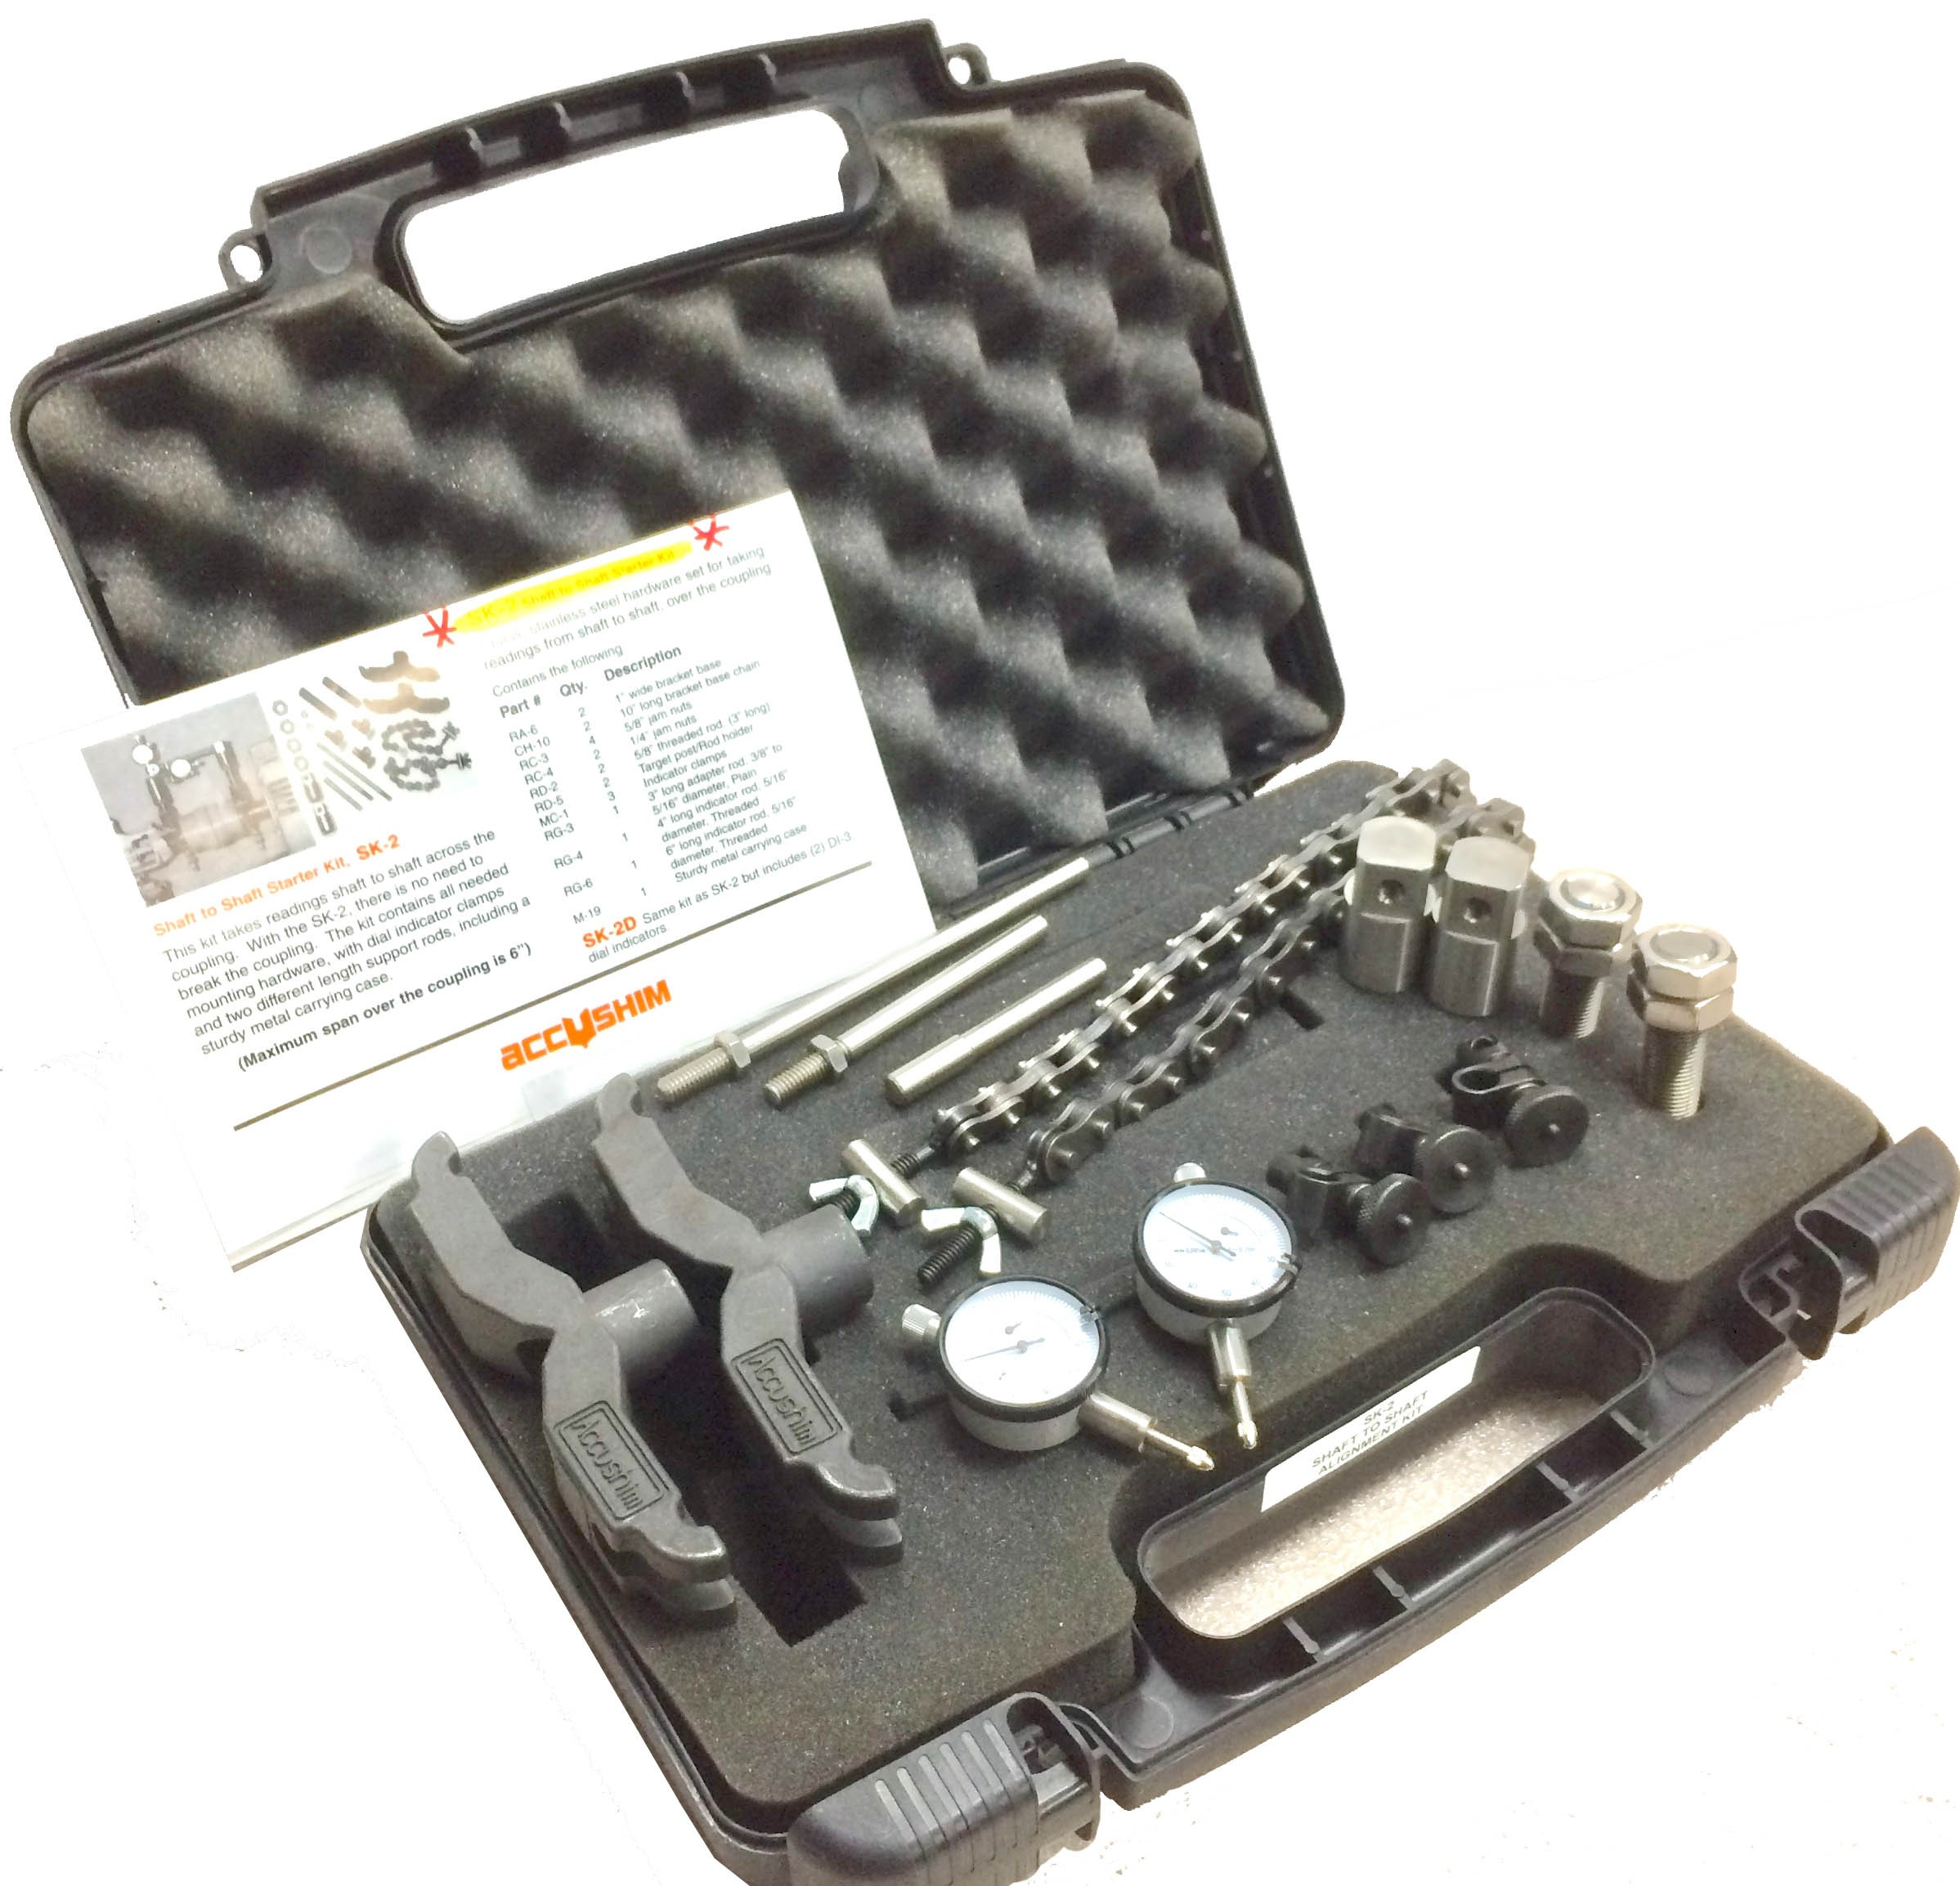 Shaft to Shaft Alignment Starter Kits